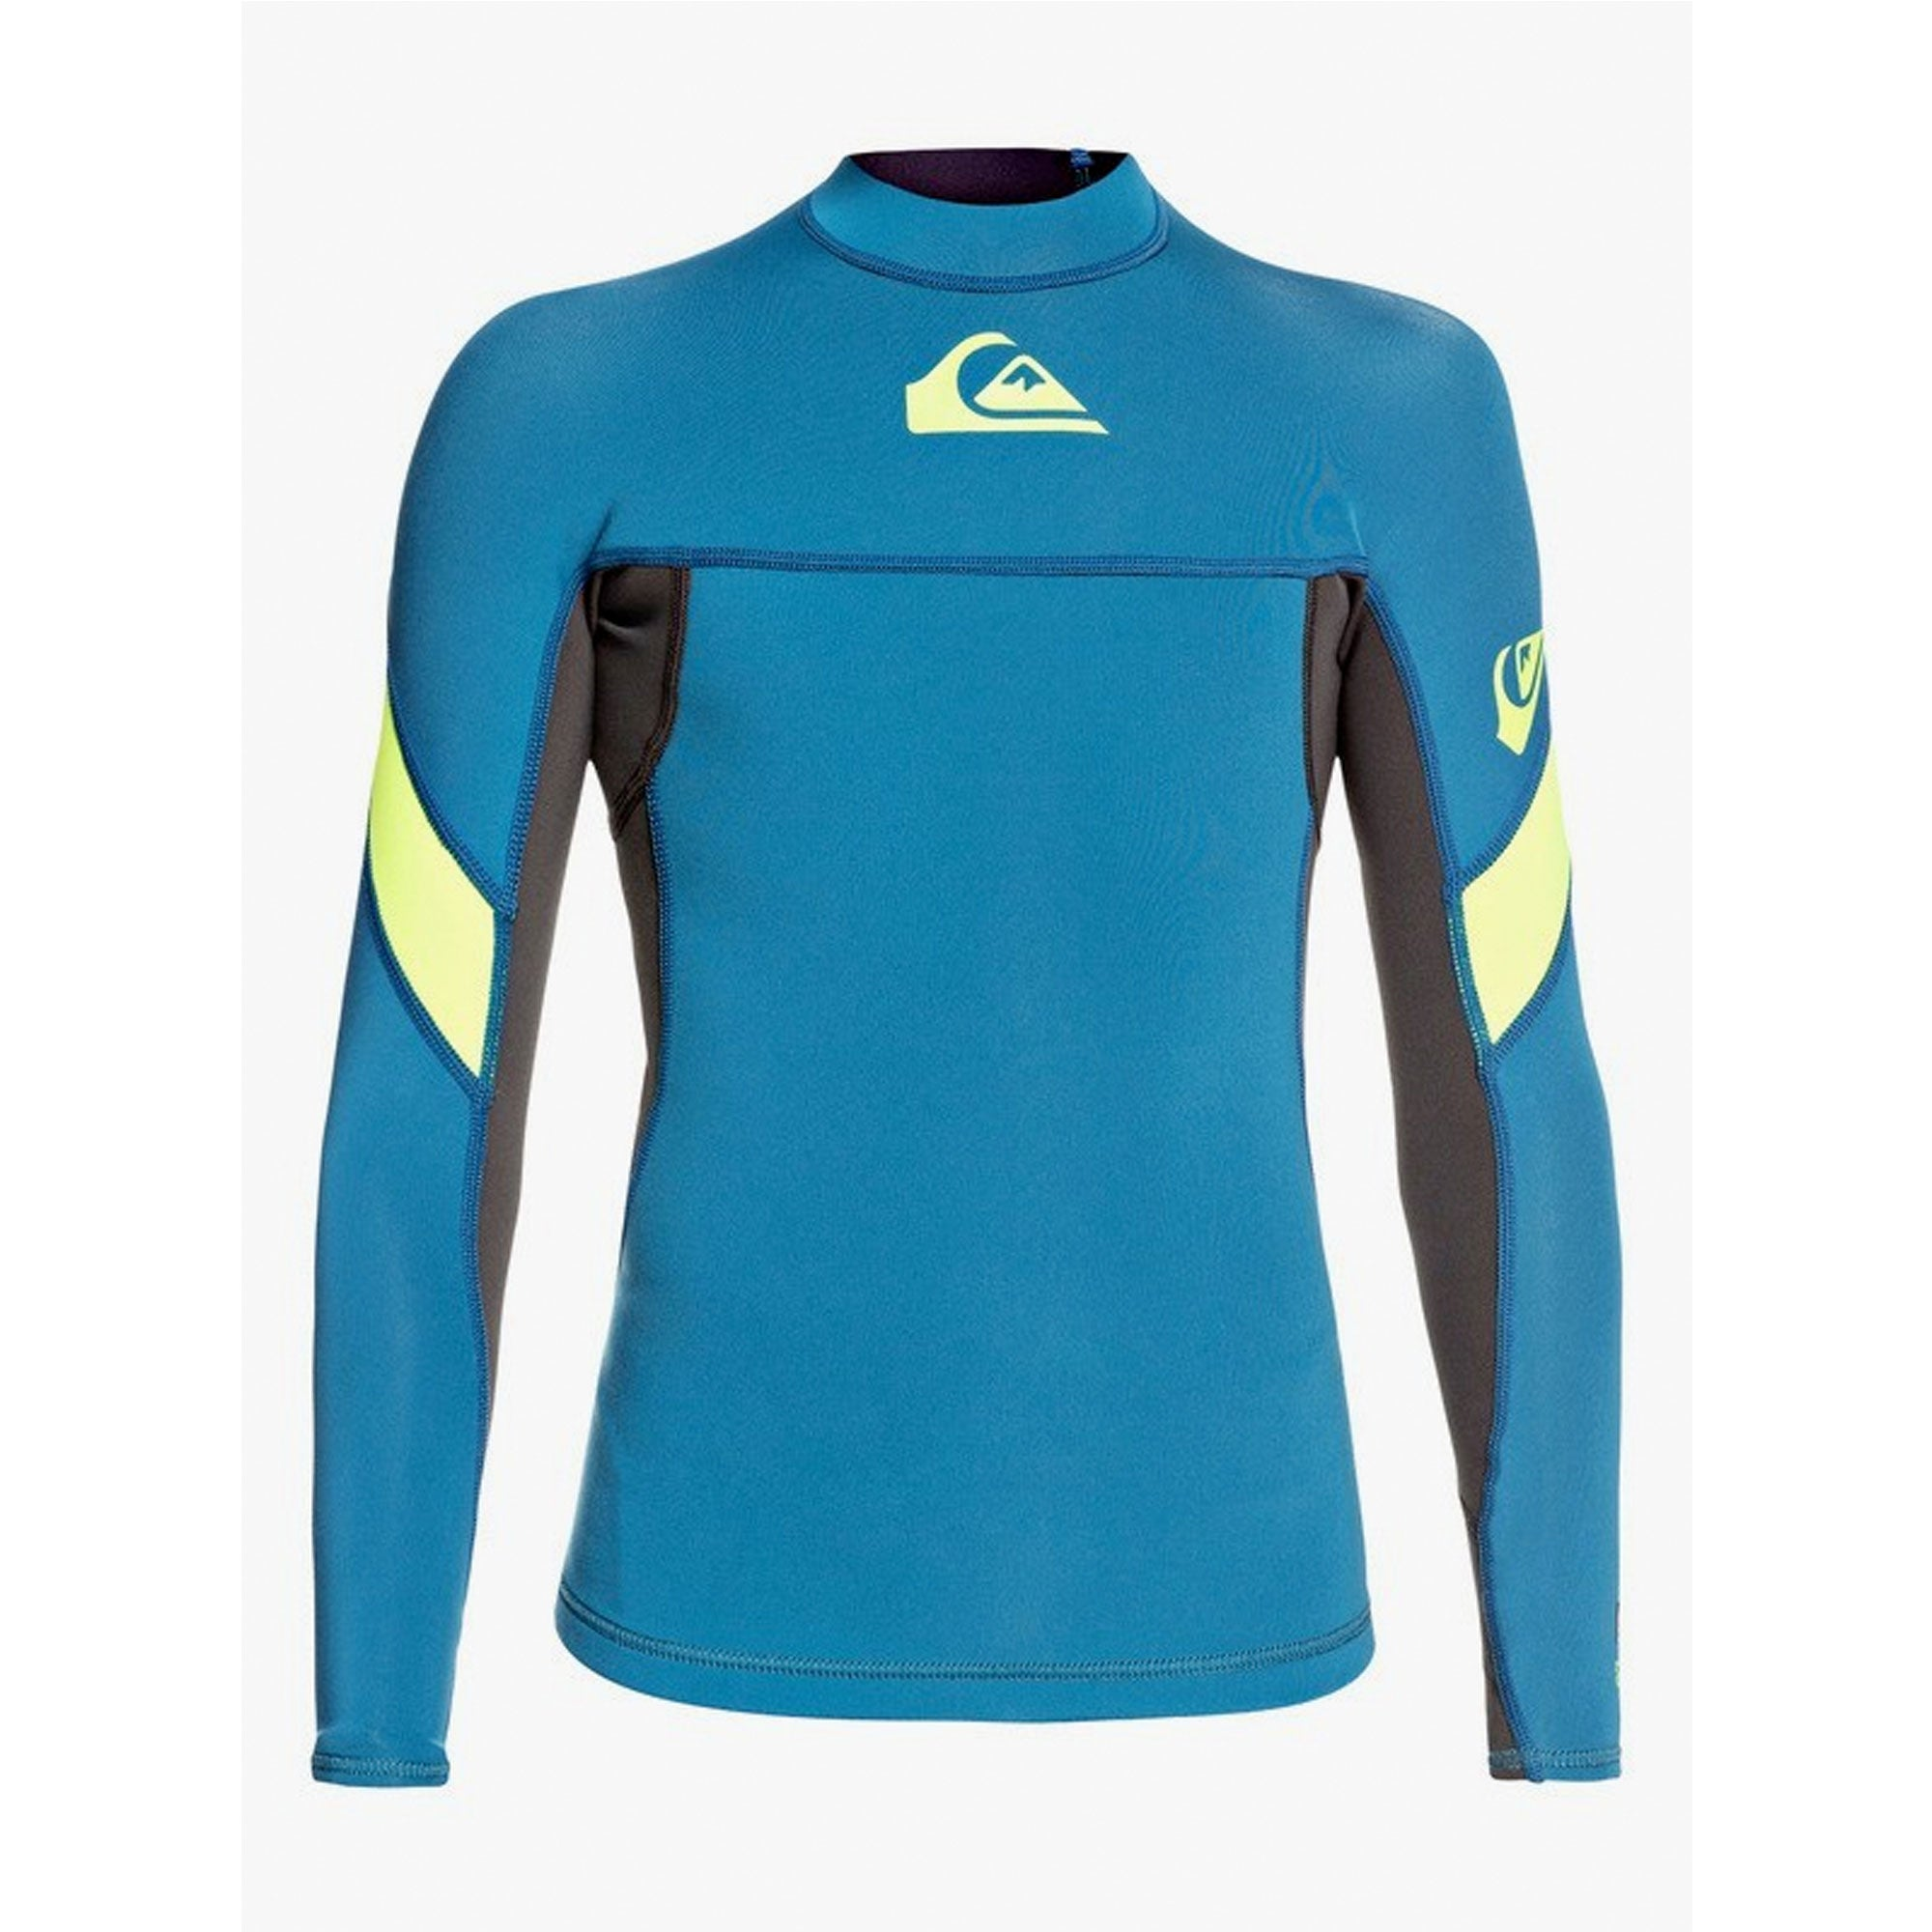 Quiksilver 1mm Syncro L/S Youth Wetsuit Top